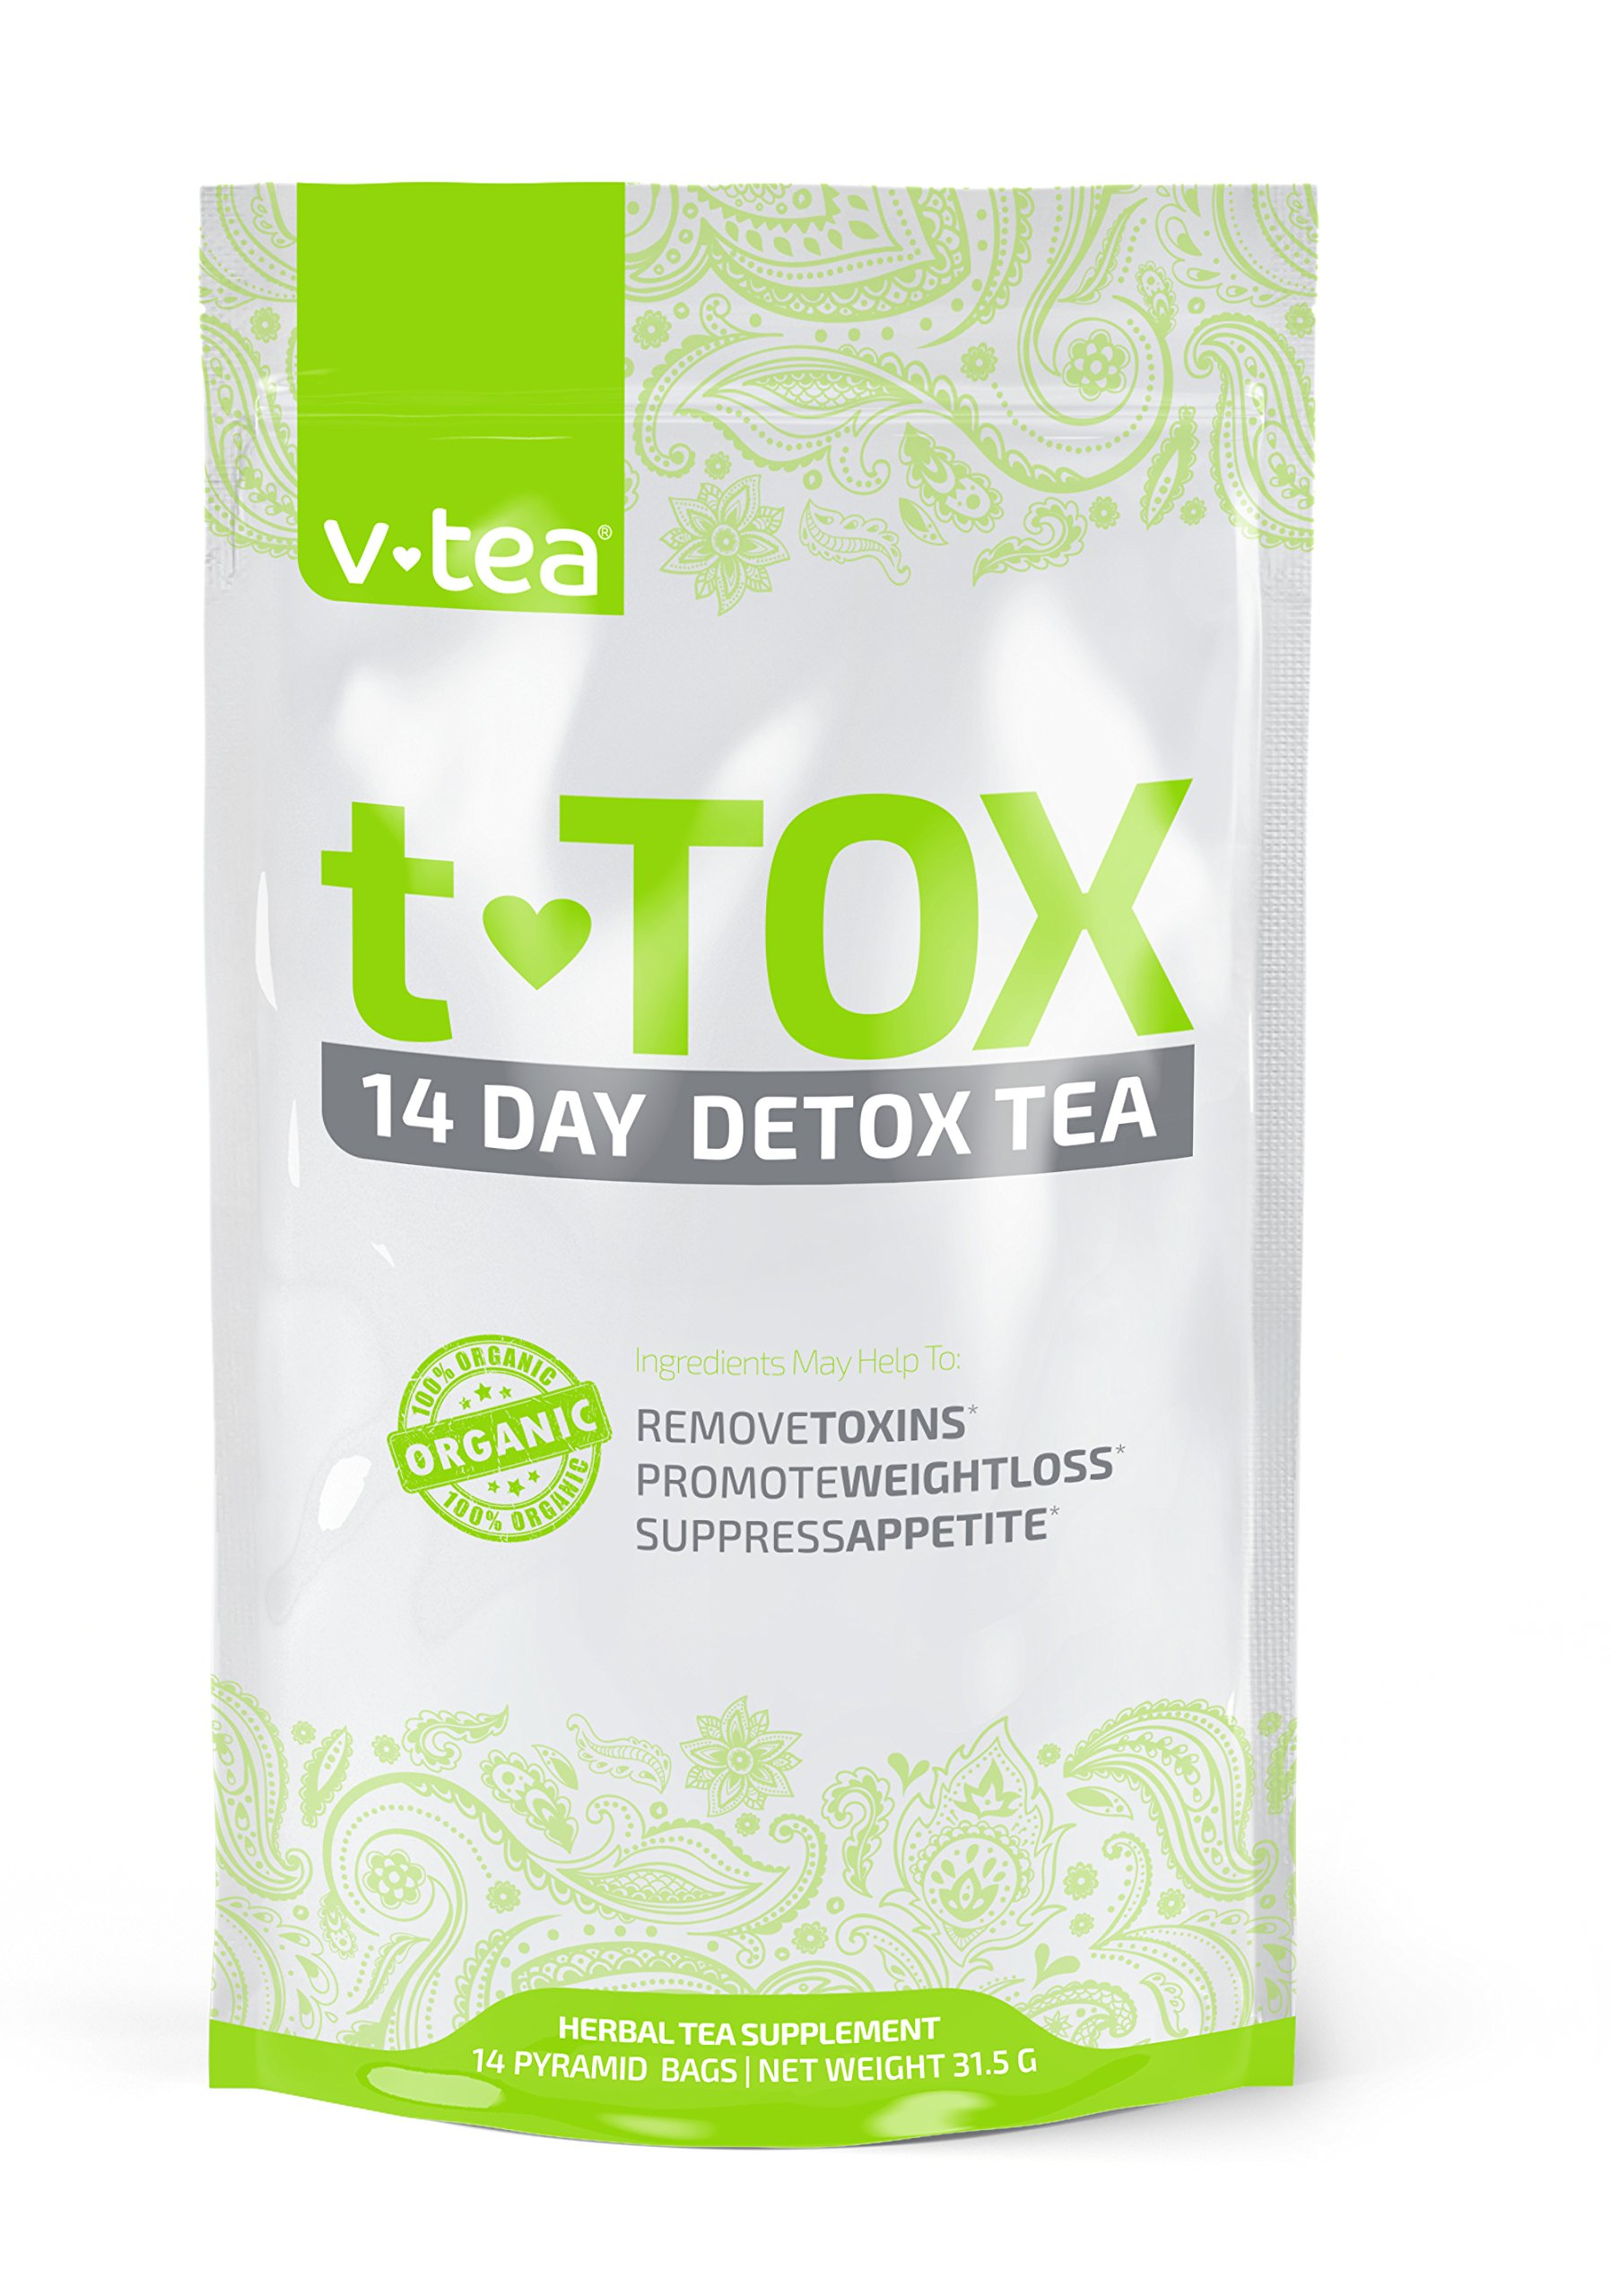 v tea Teatox 14 Day Detox Tea Cleanse, Boost Energy & Reduce Bloating (14 Pyramid Tea Bags)